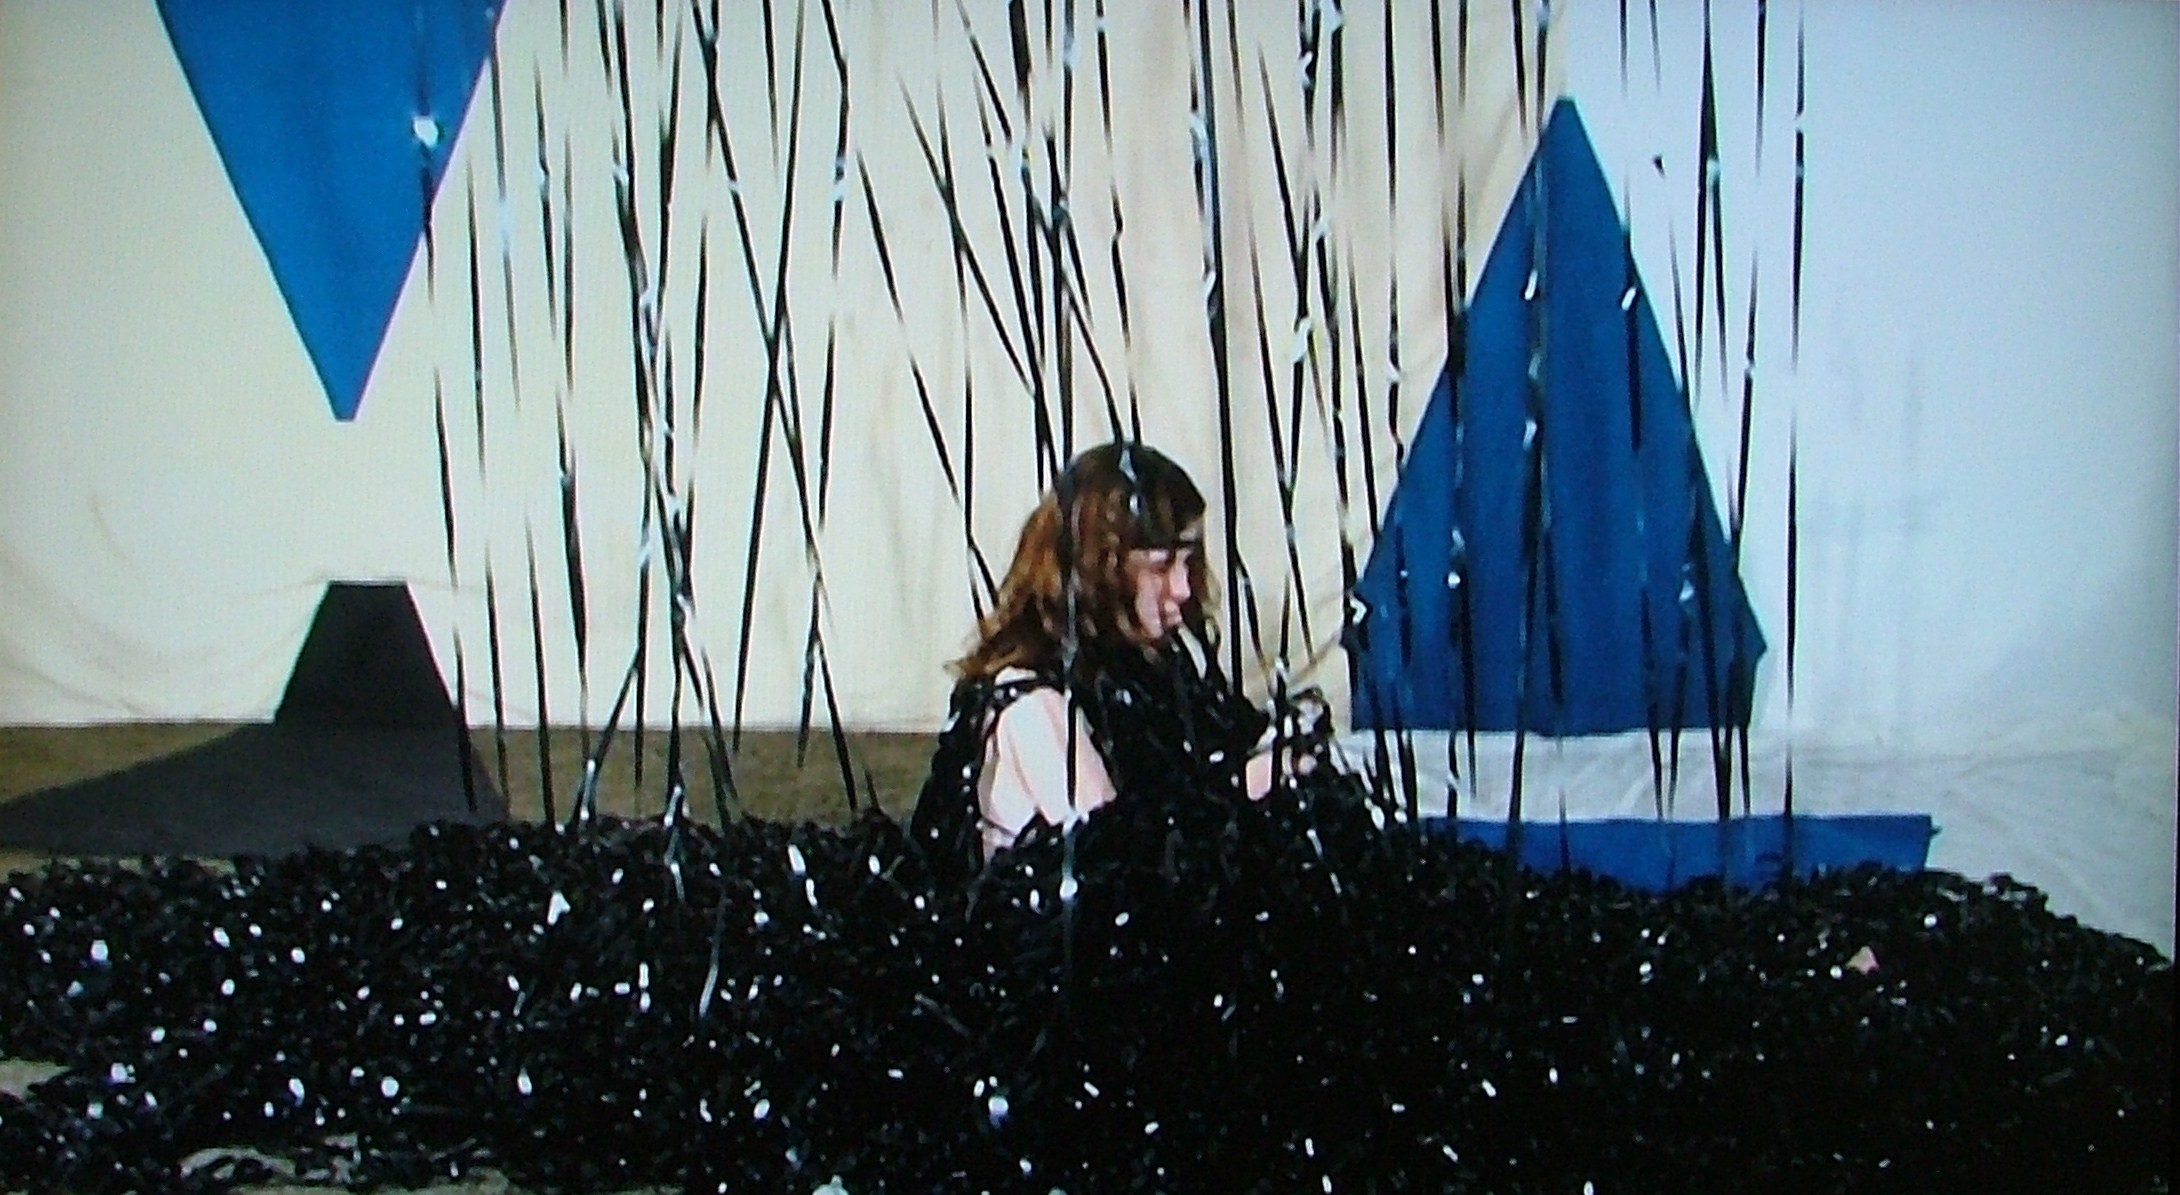 Kate Brown, Flight over Hollywood 2, single channel video, 2009